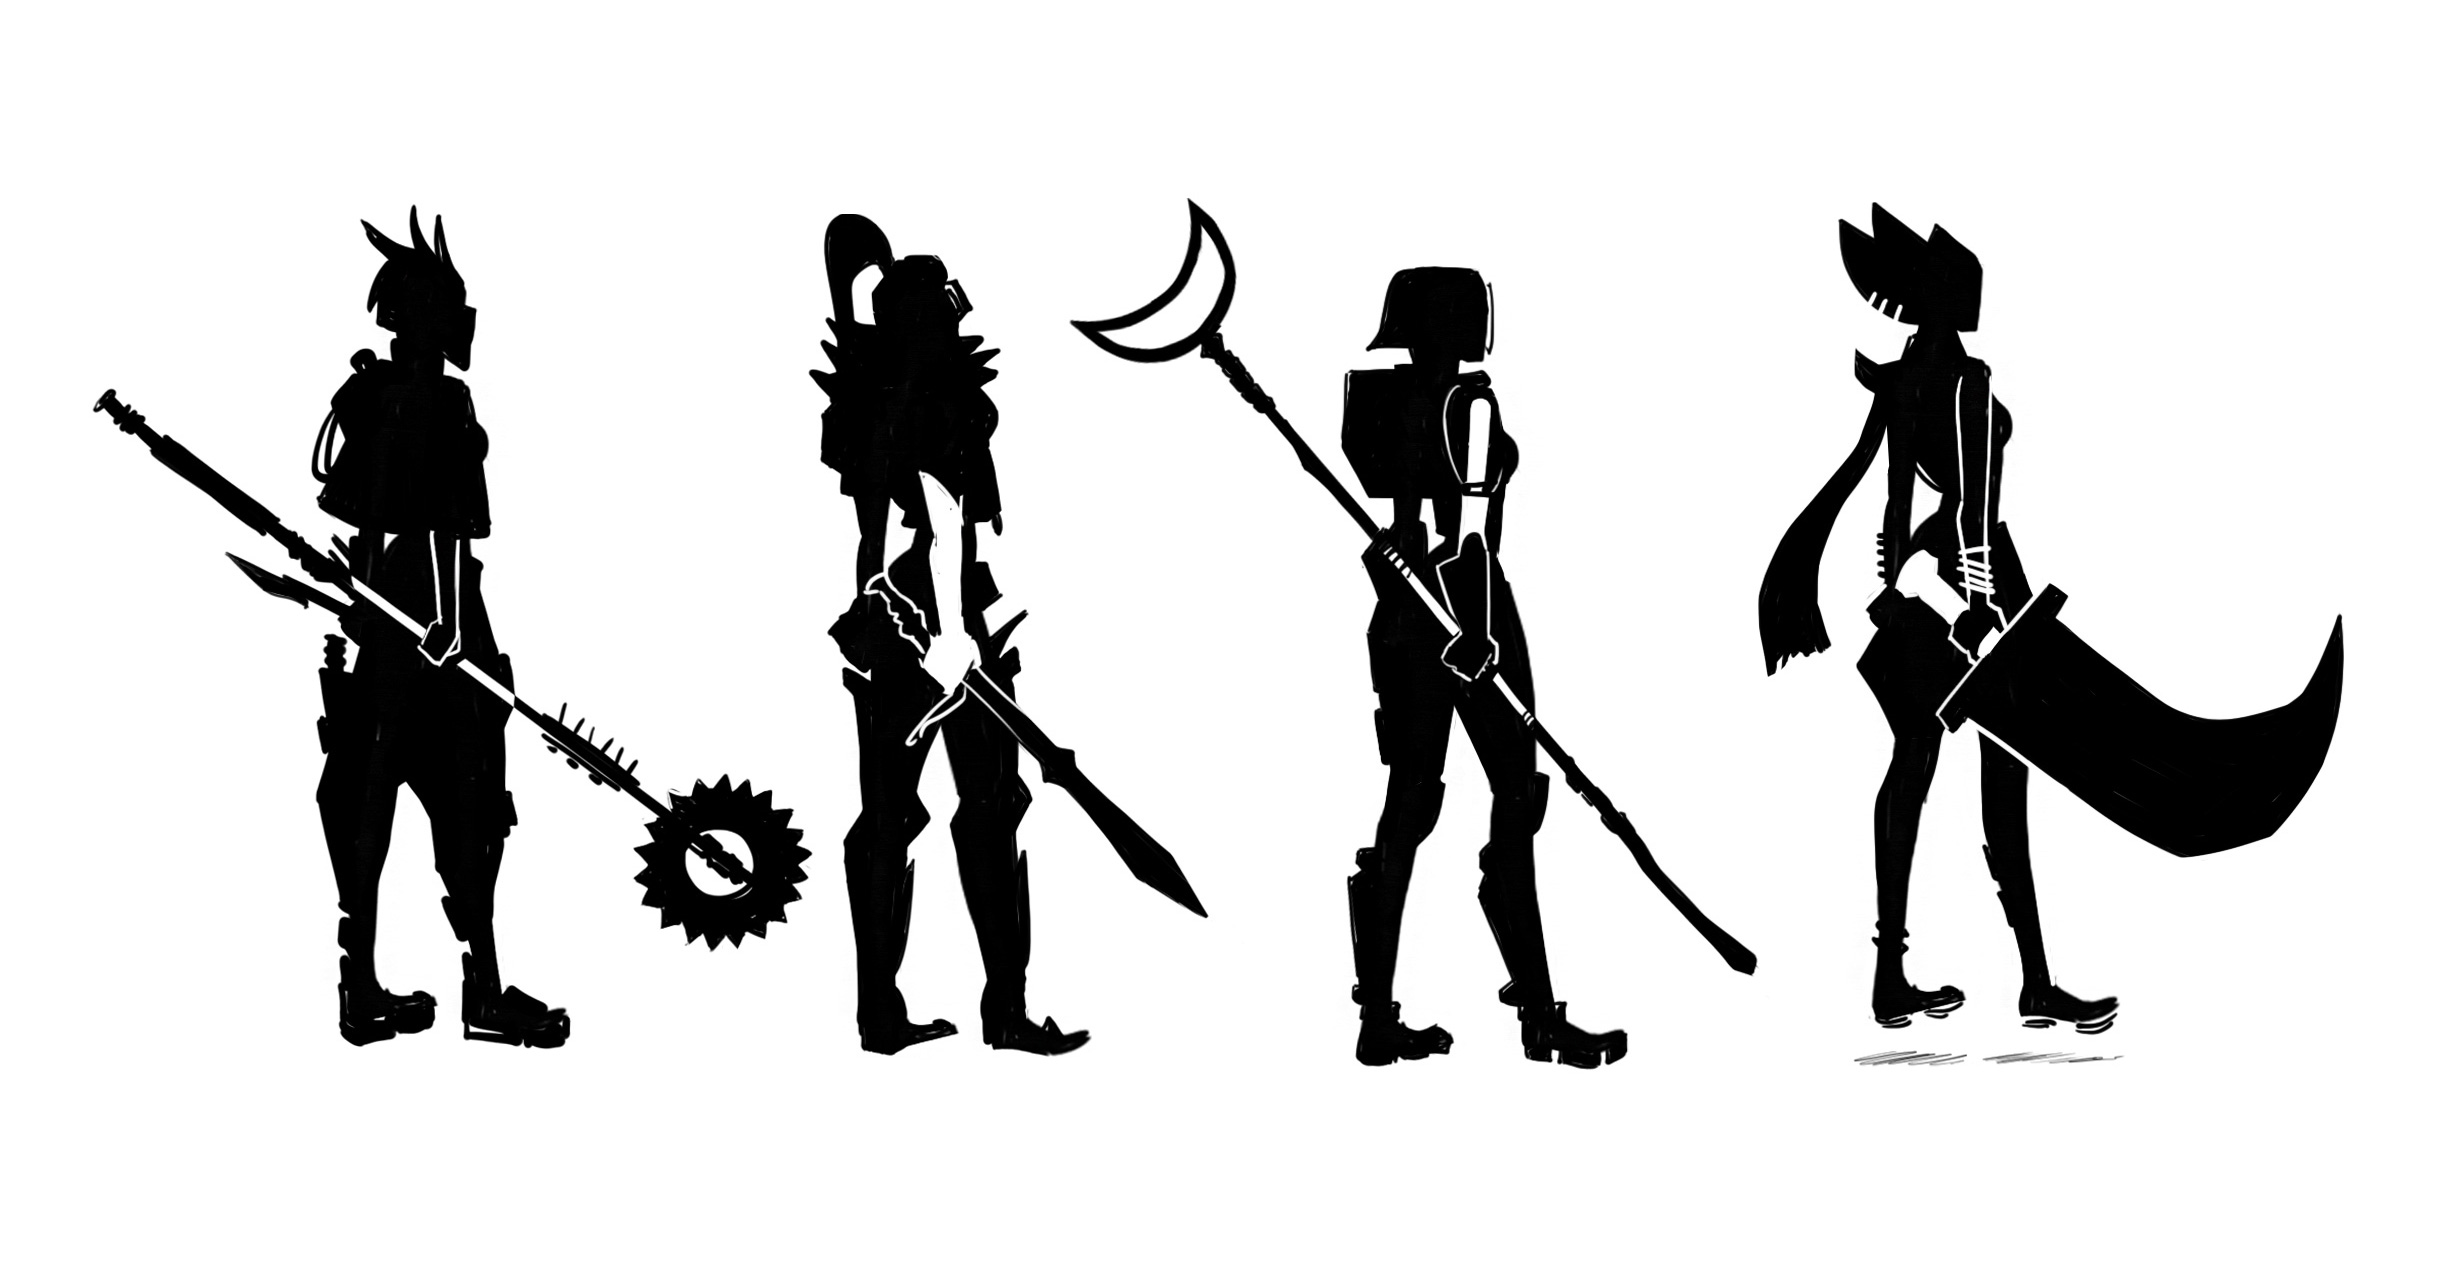 character-silhouettes-02b.jpg